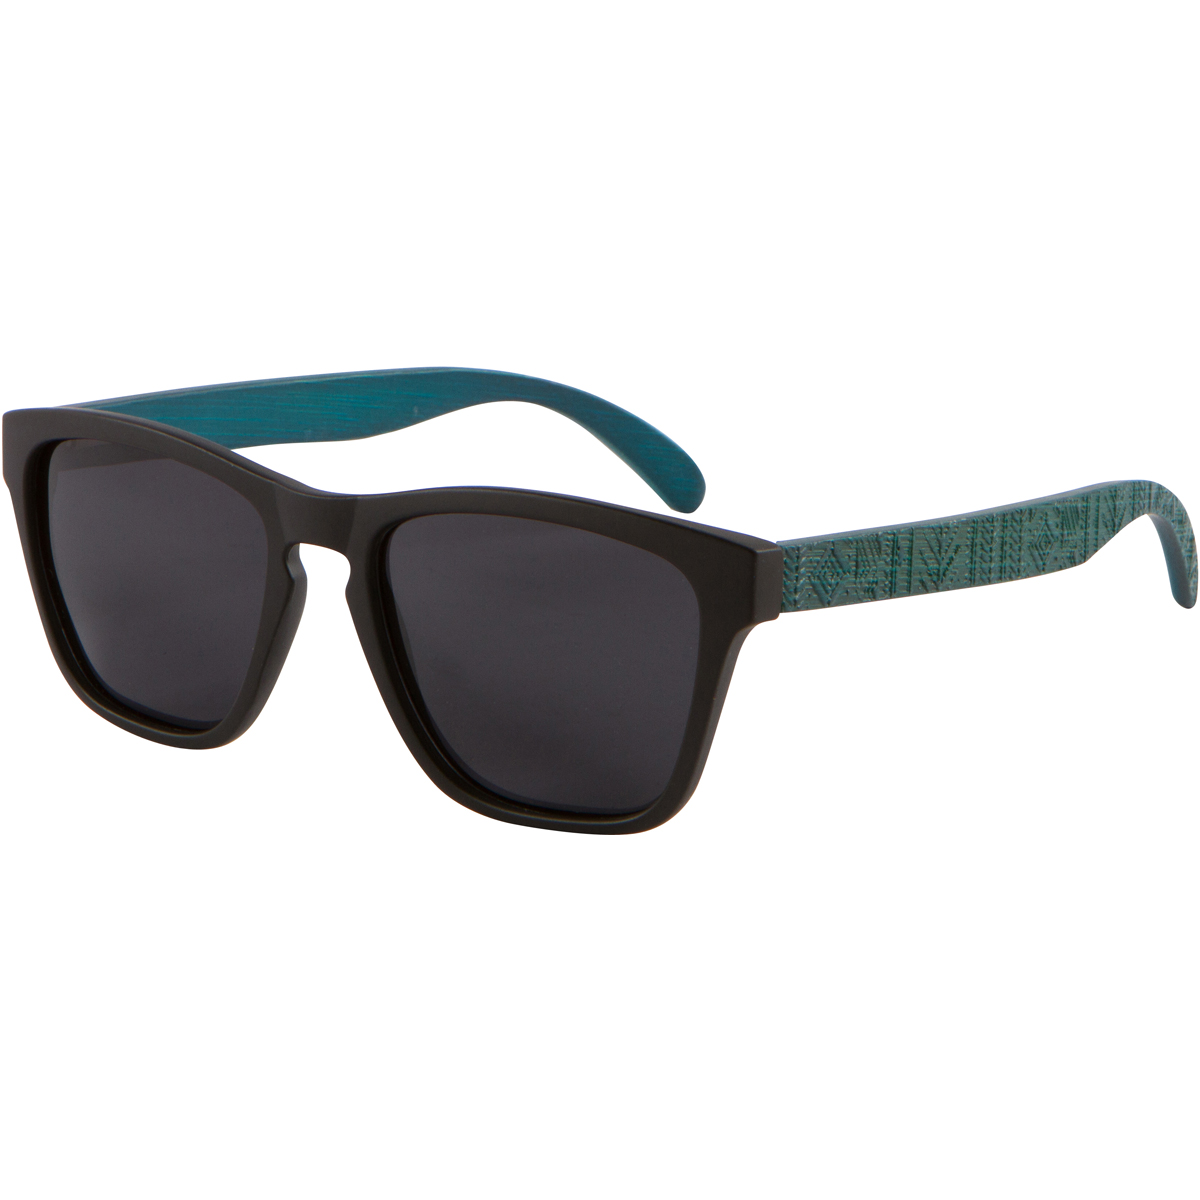 Tribe Blue Wood Sunglasses